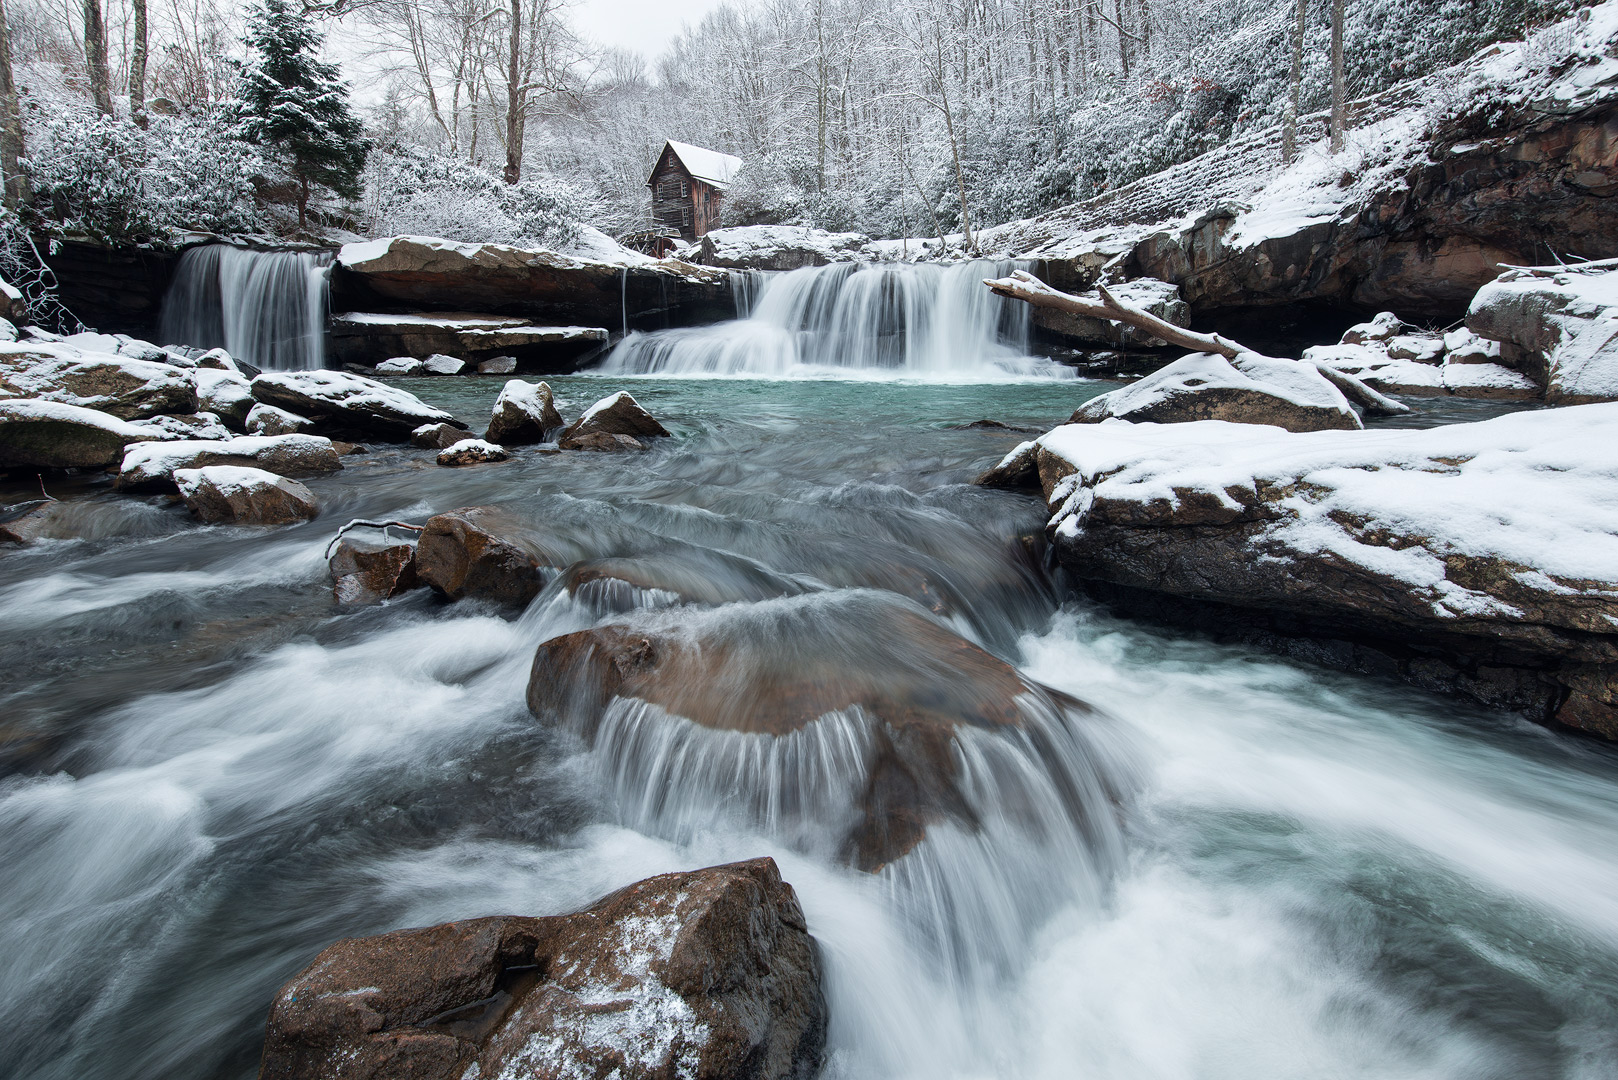 West Virginia, Babcock State Park, Glade Creek Grist Mill, New River Gorge, Babcock, Waterfalls, Cascades, Mill, Winter, Snow, Grist Mill, photo